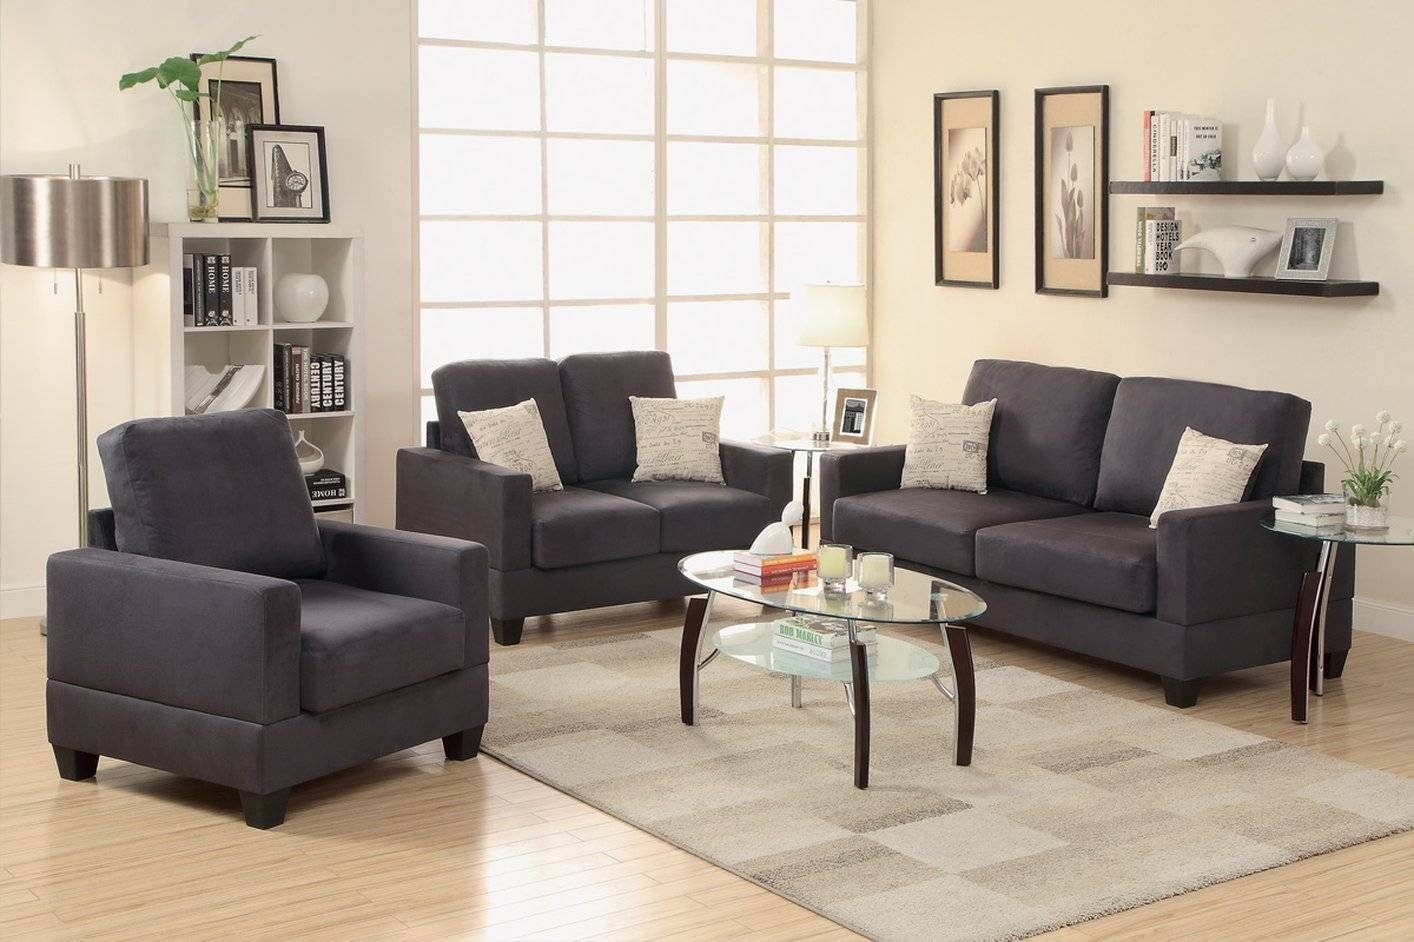 Couch And Loveseat Set Gray Foam Sofa Bed Oval Glass Coffee Table within Oval Sofas (Image 2 of 30)